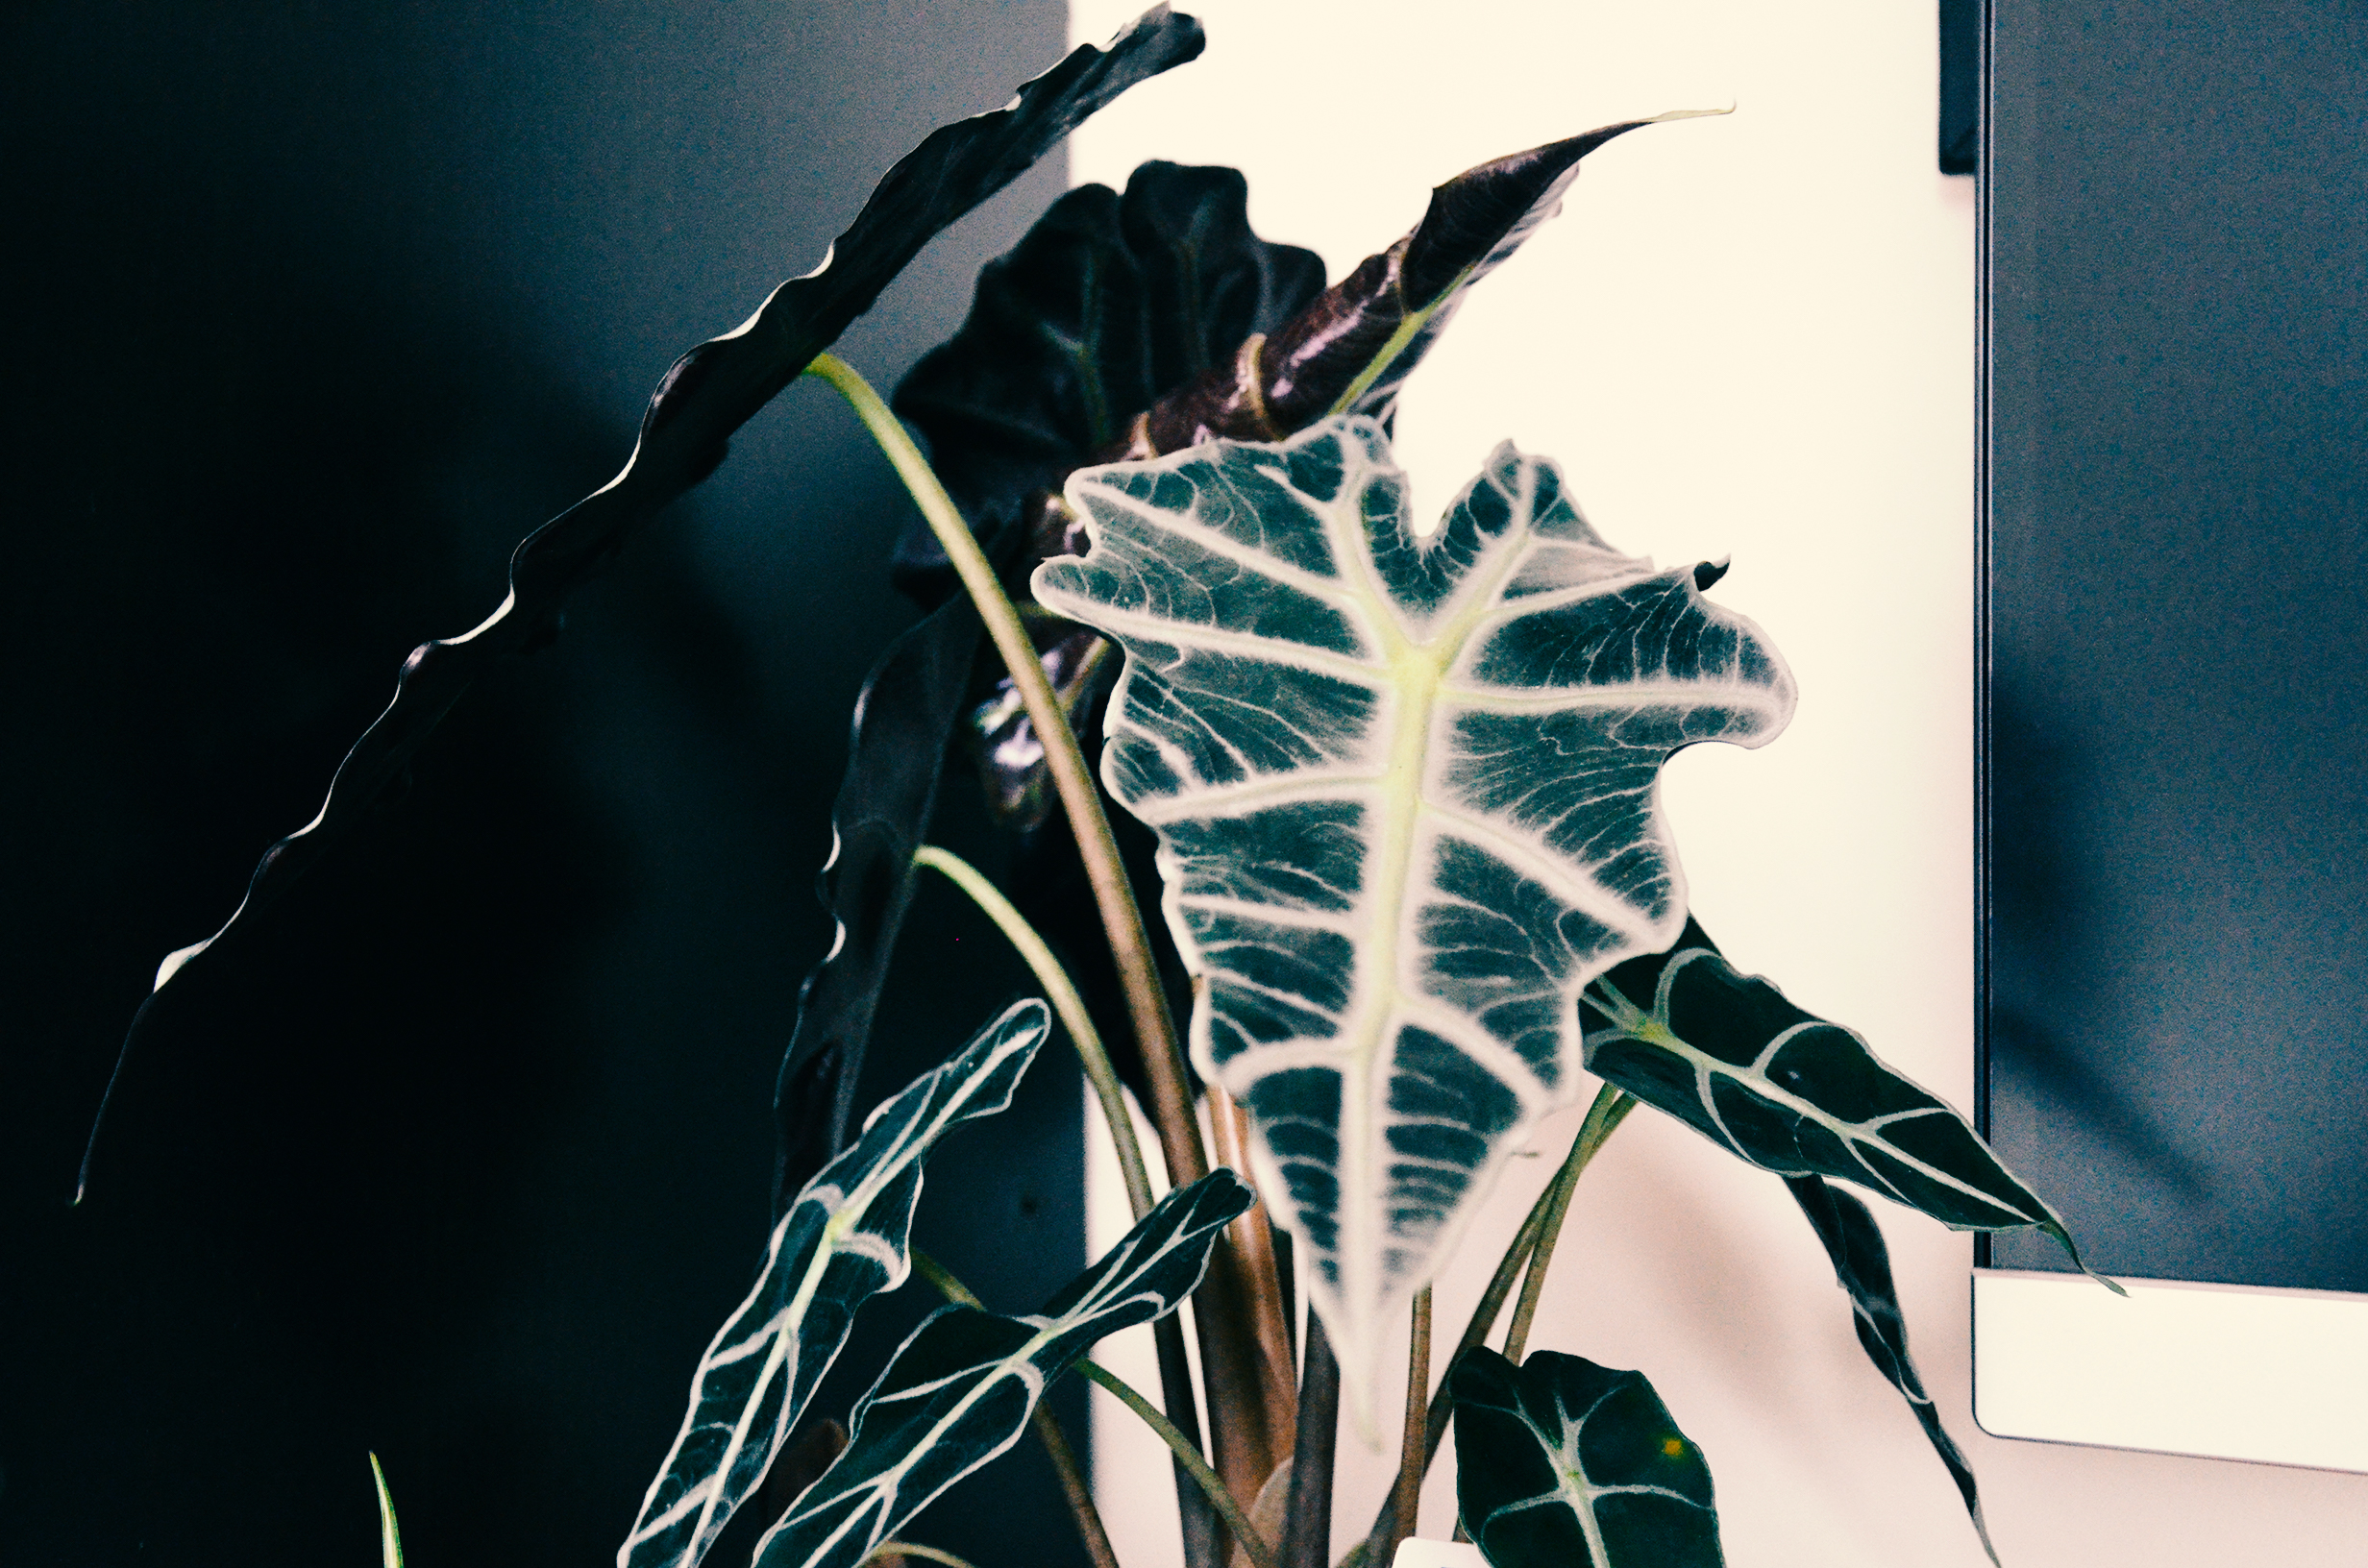 Calathea made room for this funky plant that looks like a sword